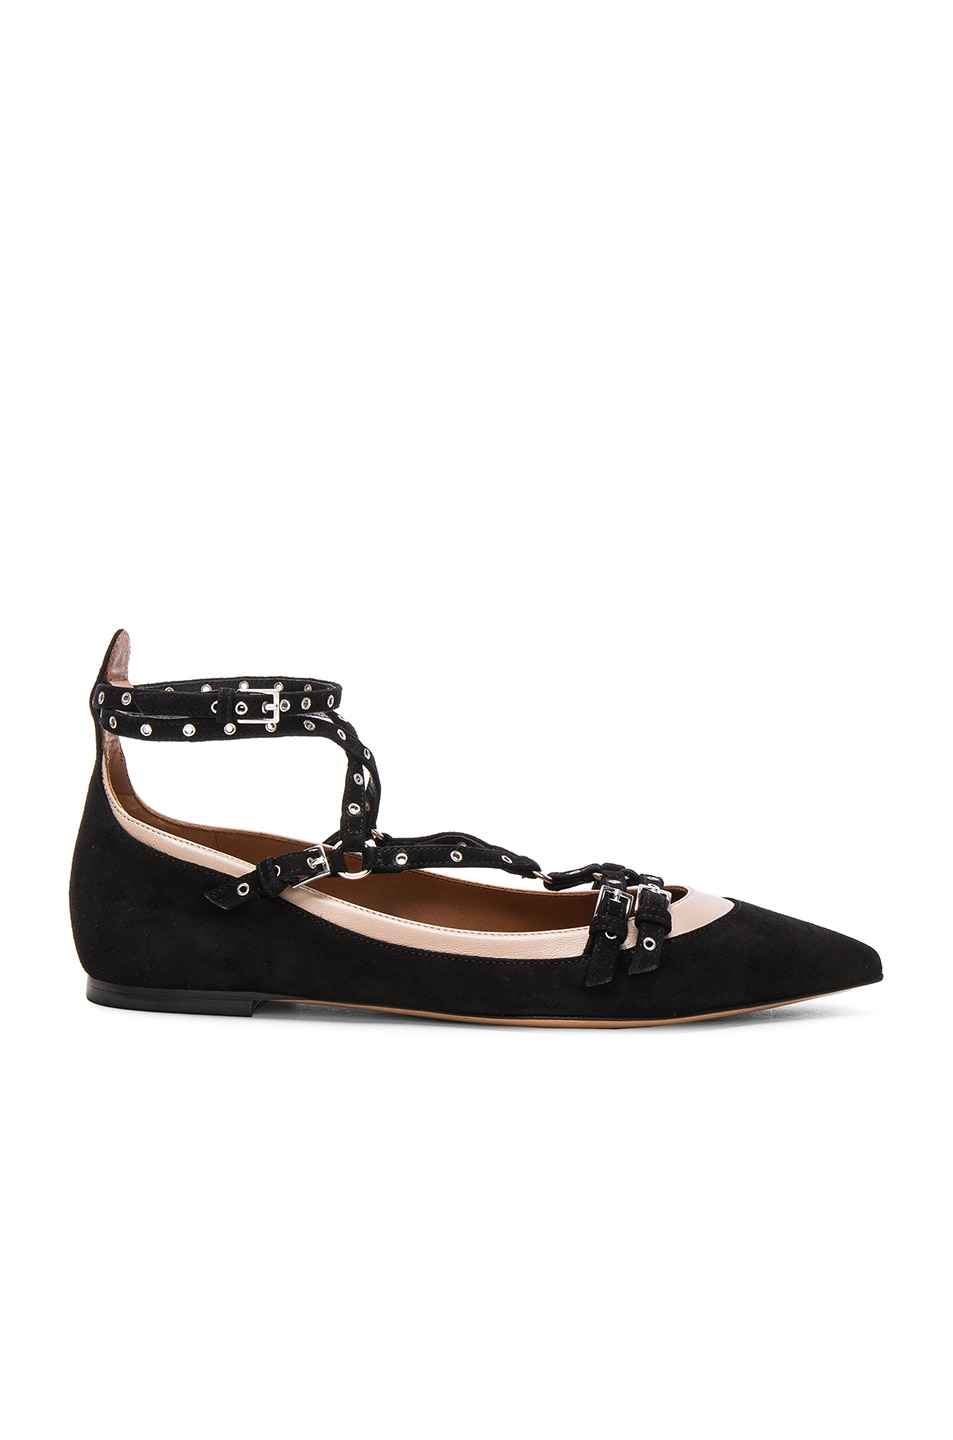 Image 1 of Valentino Suede Rockstud Ballerina Flats in Black & Poudre